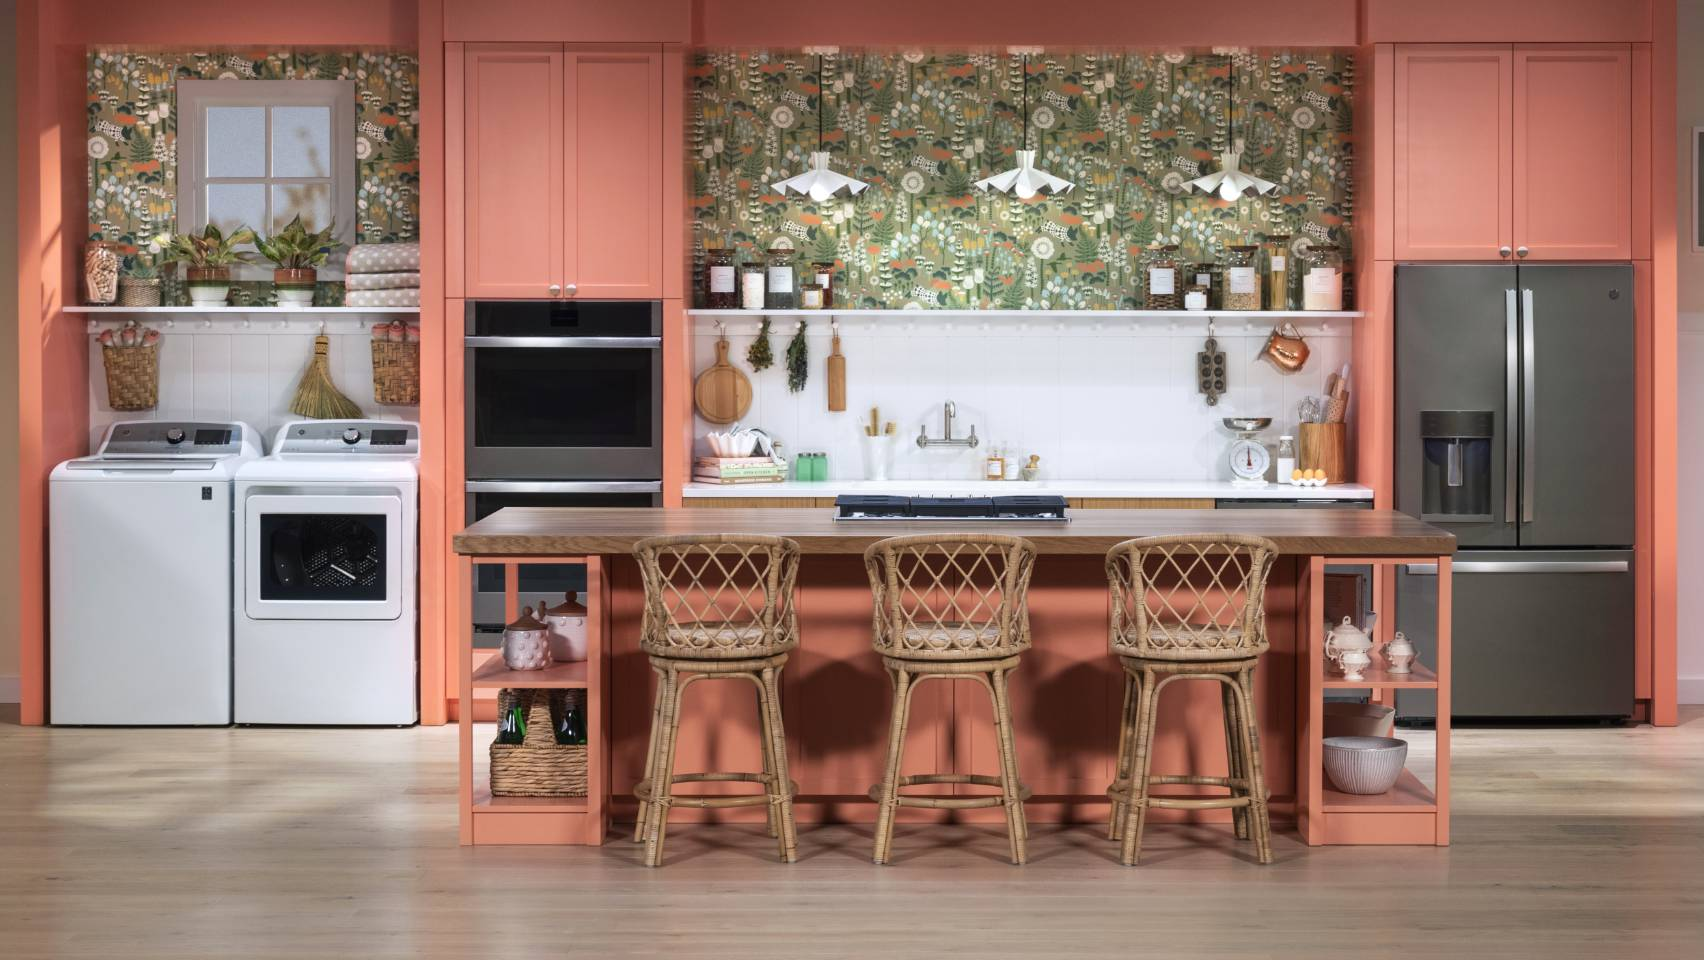 Traditional Peach Cozy Kitchen Design